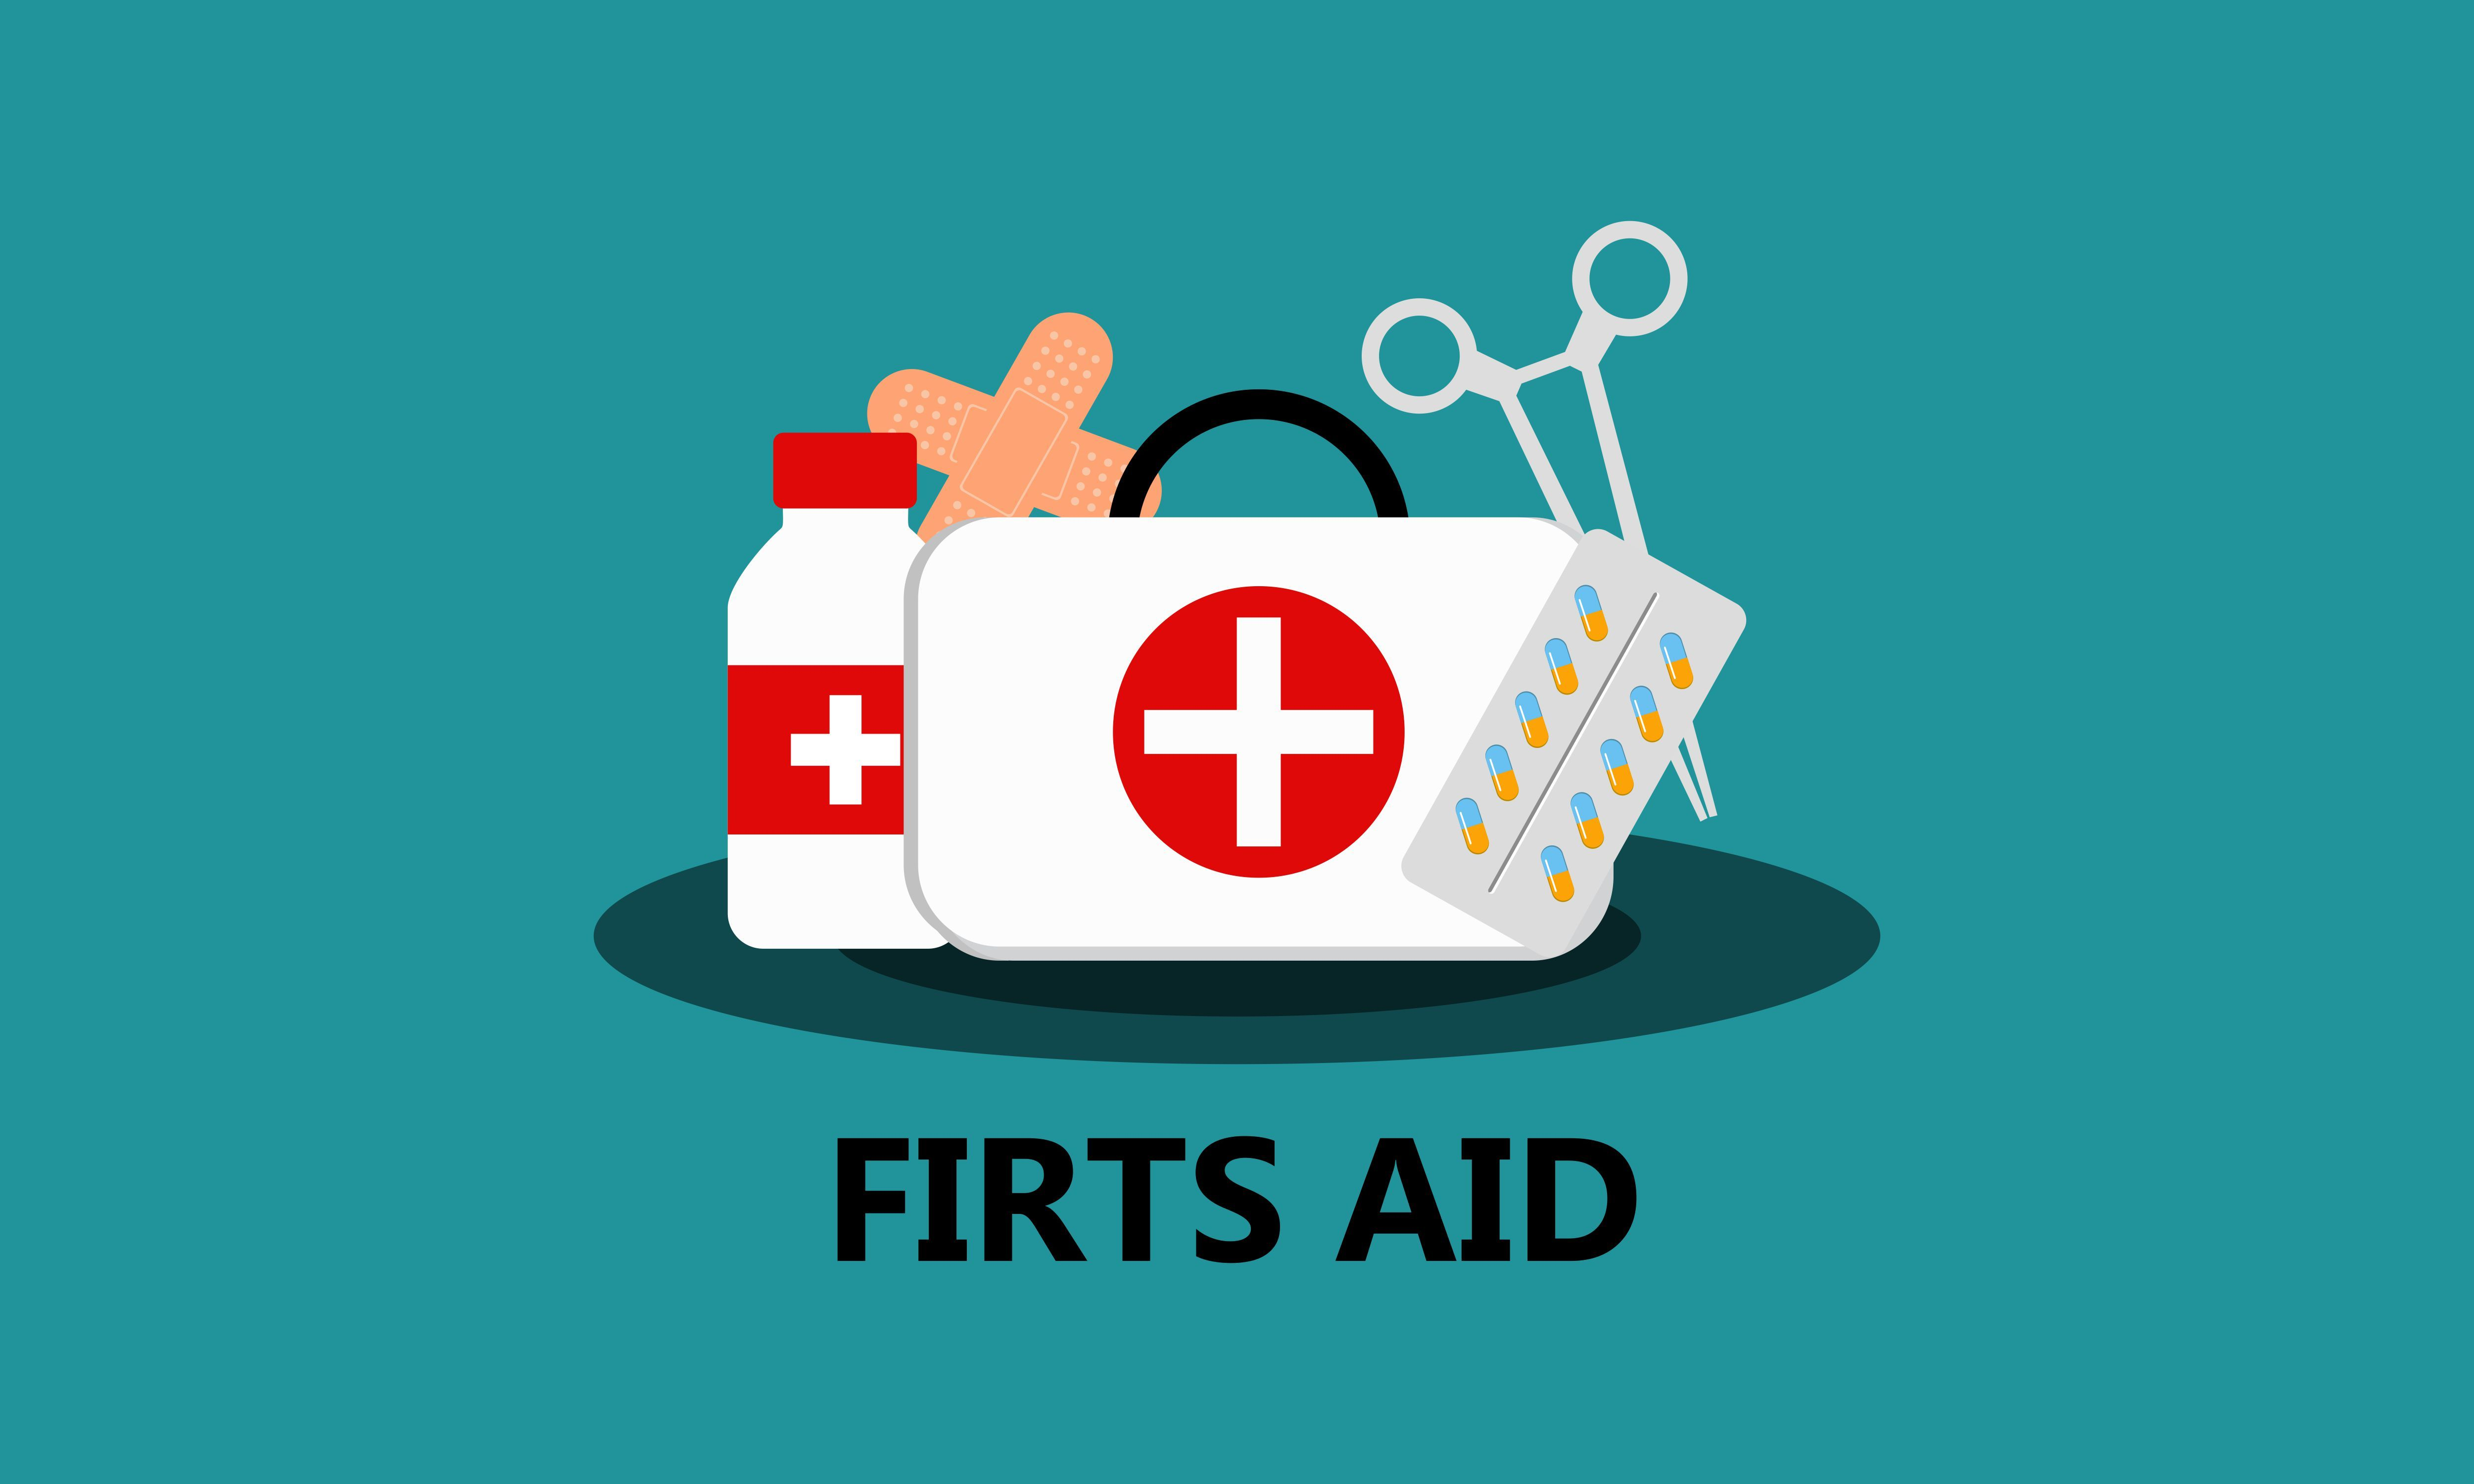 First Aid Kit Supply Emergency Medical Graphic By 2qnah Creative Fabrica First Aid Kit Supplies First Aid Kit Emergency Medical